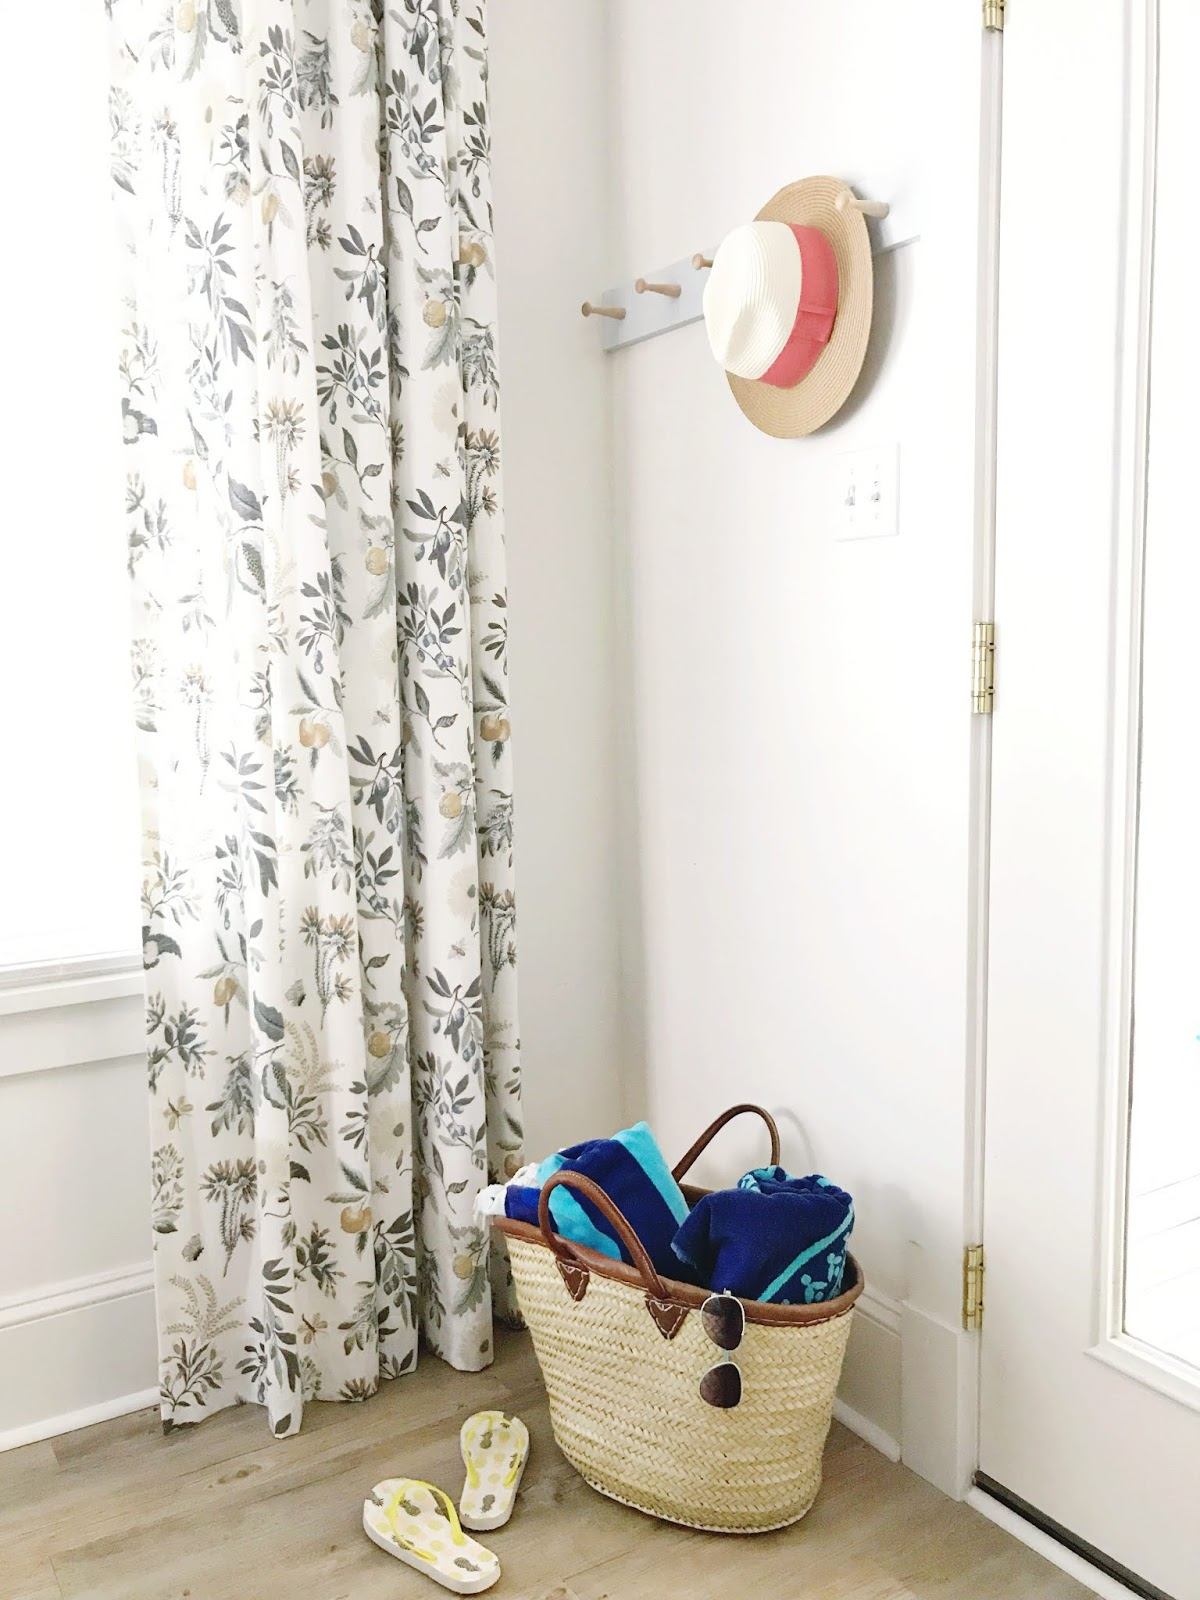 diy shaker peg rail, straw hat, country floral curtains, beach bag